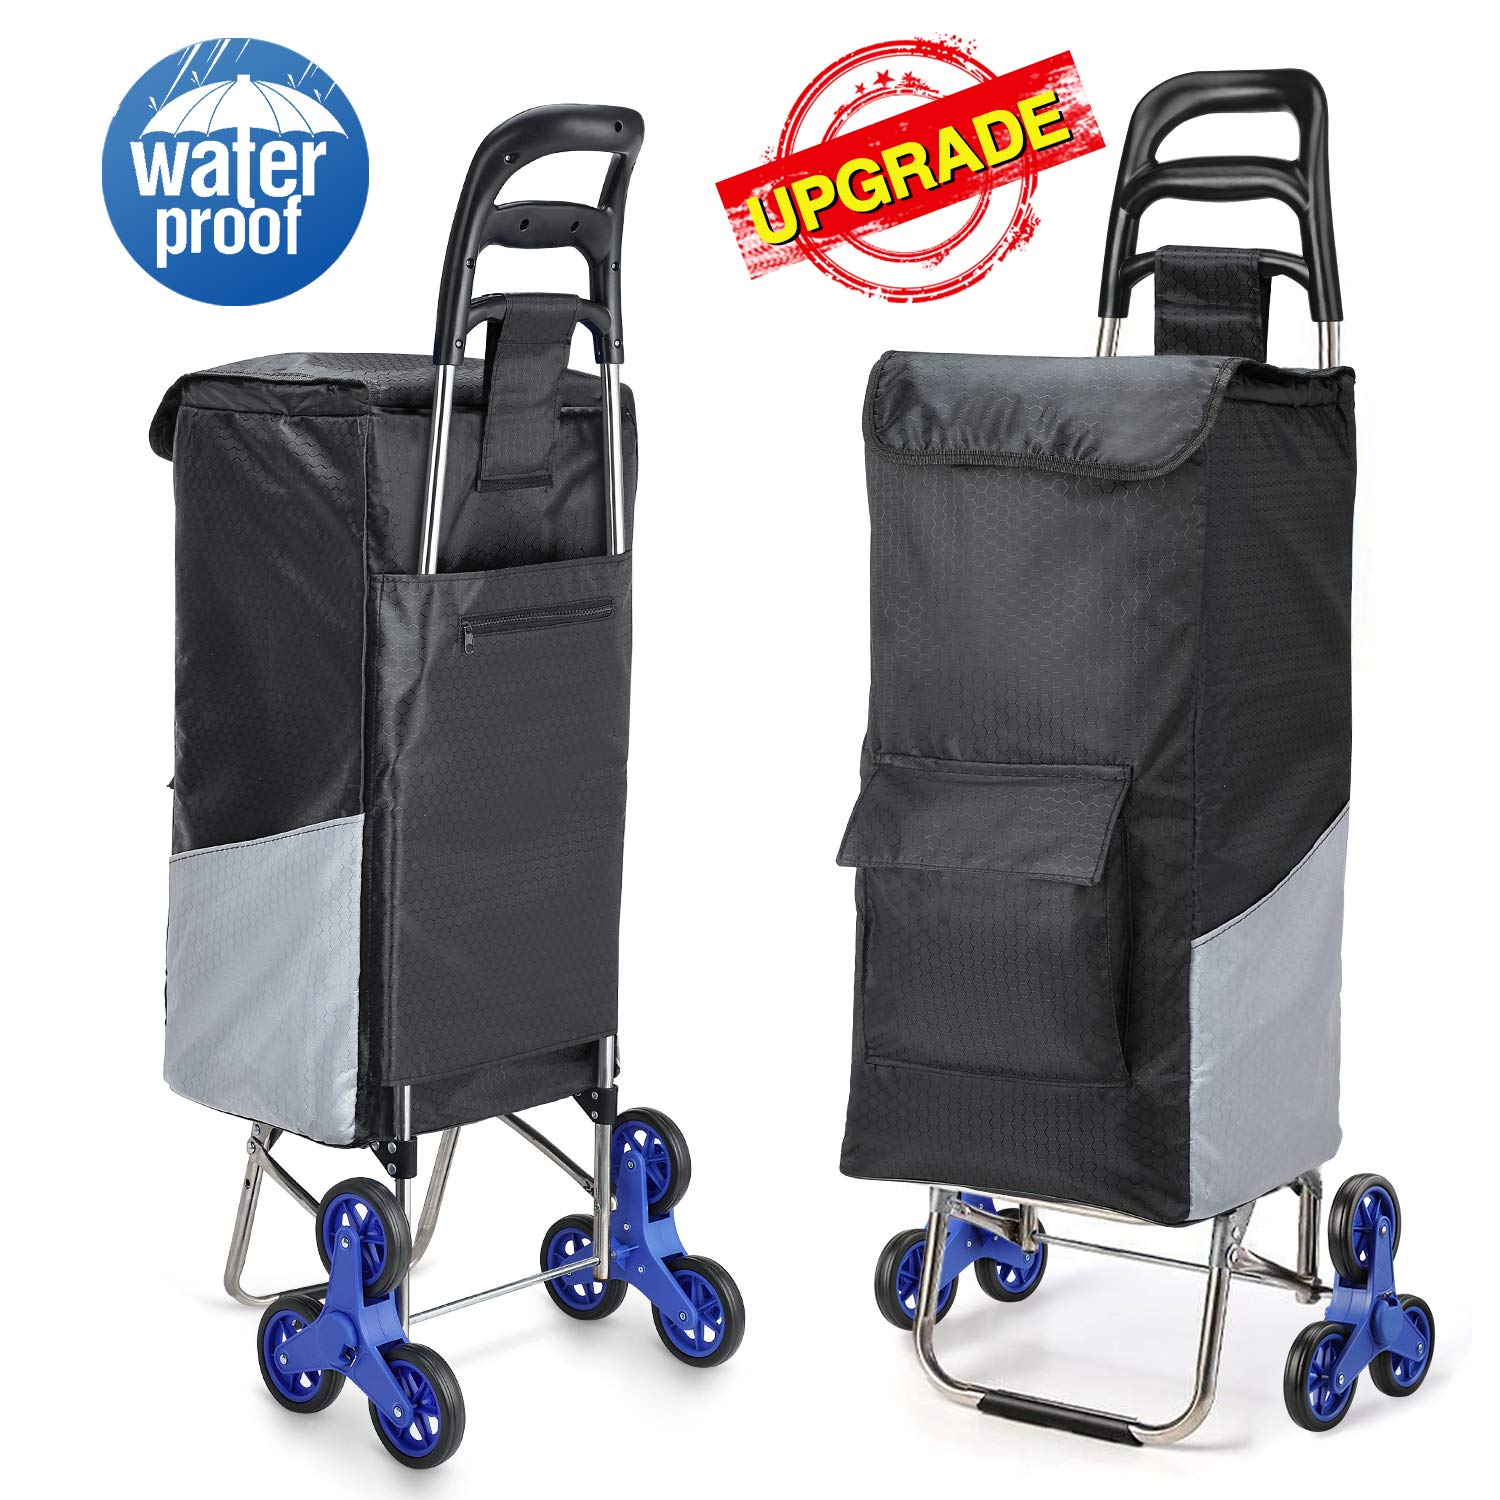 Lenbest Upgraded Tri-Wheels Shopping Cart, Grocery Cart with Stainless Steel Frame & Extended Long Handle Foldable Utility Cart with 6 Large Storage Waterproof Pockets No Tools Required Install by lenbest